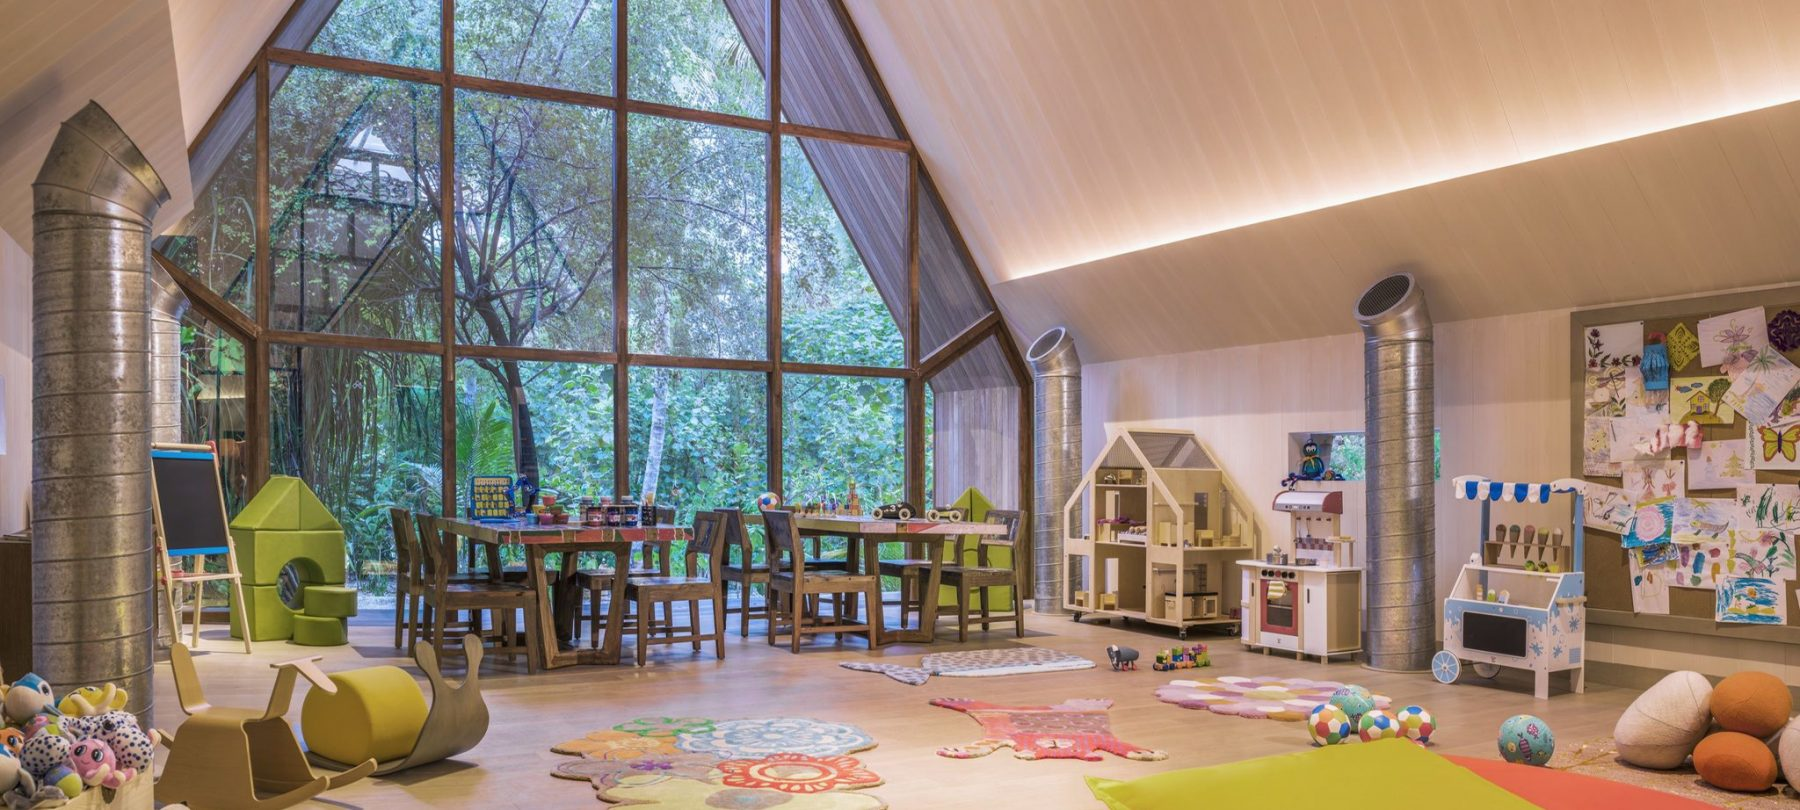 Stoerrr - Kids Club Concepts for Hotels